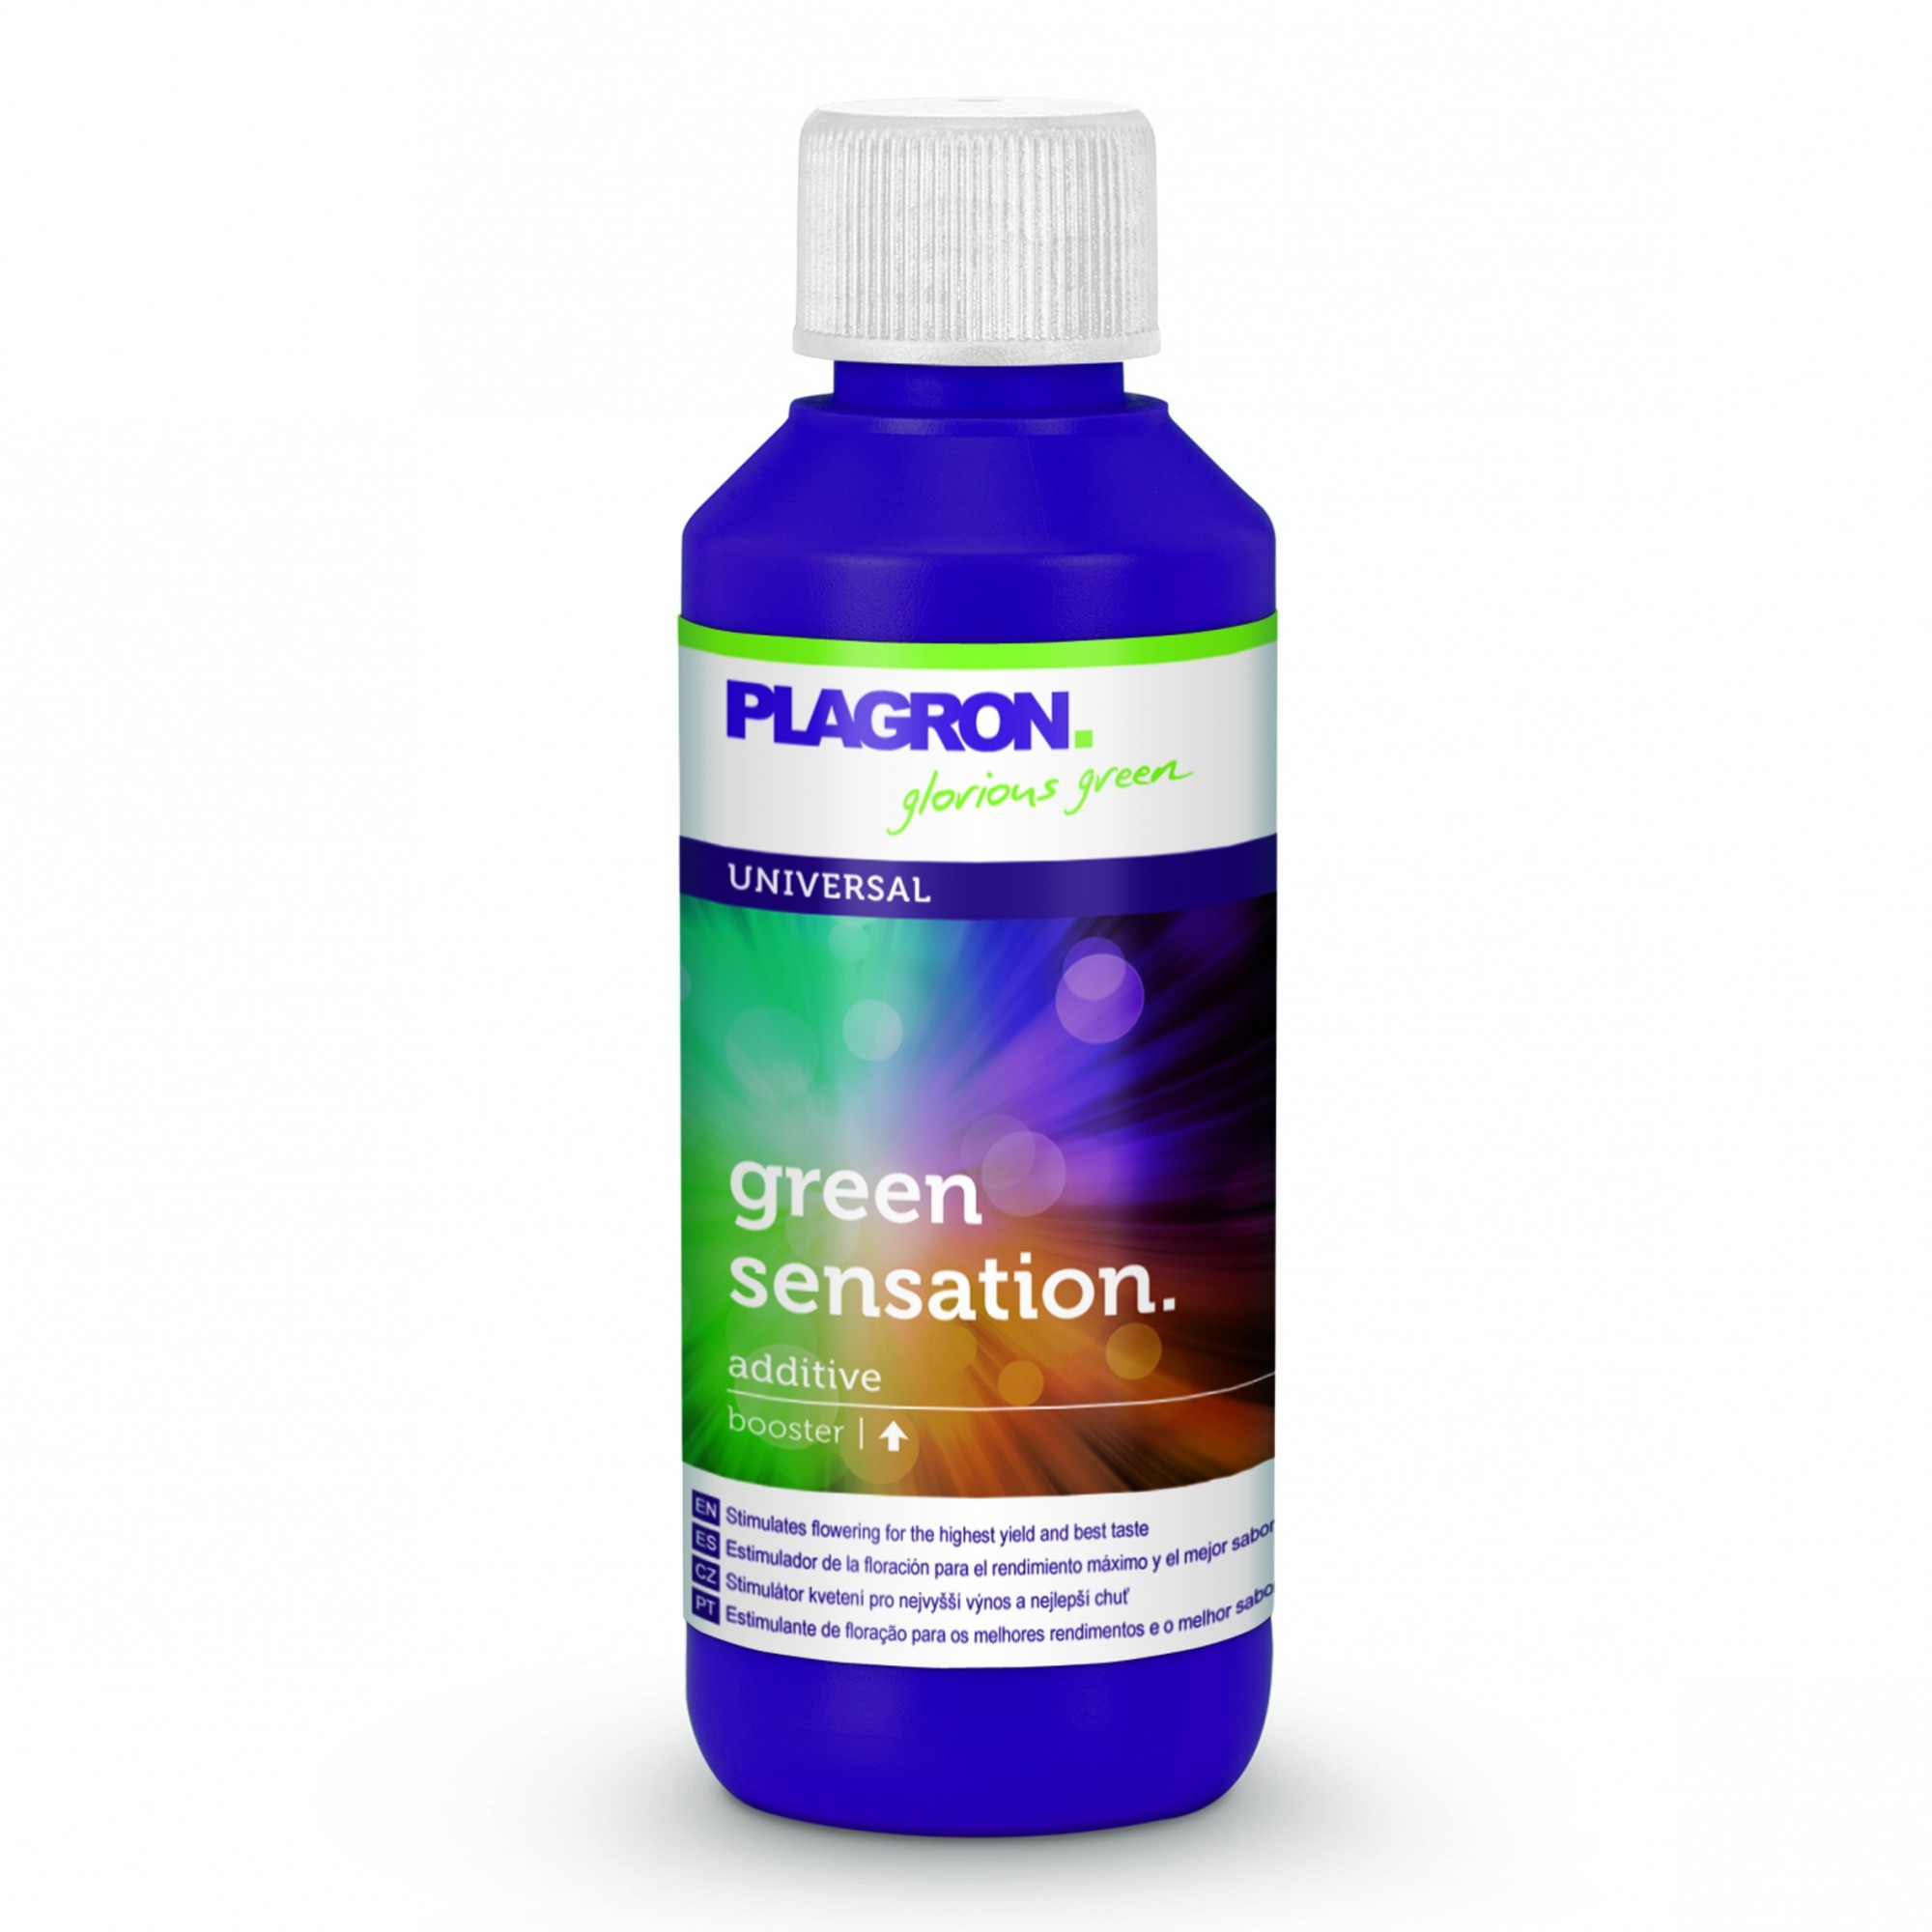 Plagron Green Sensation 0,1 l